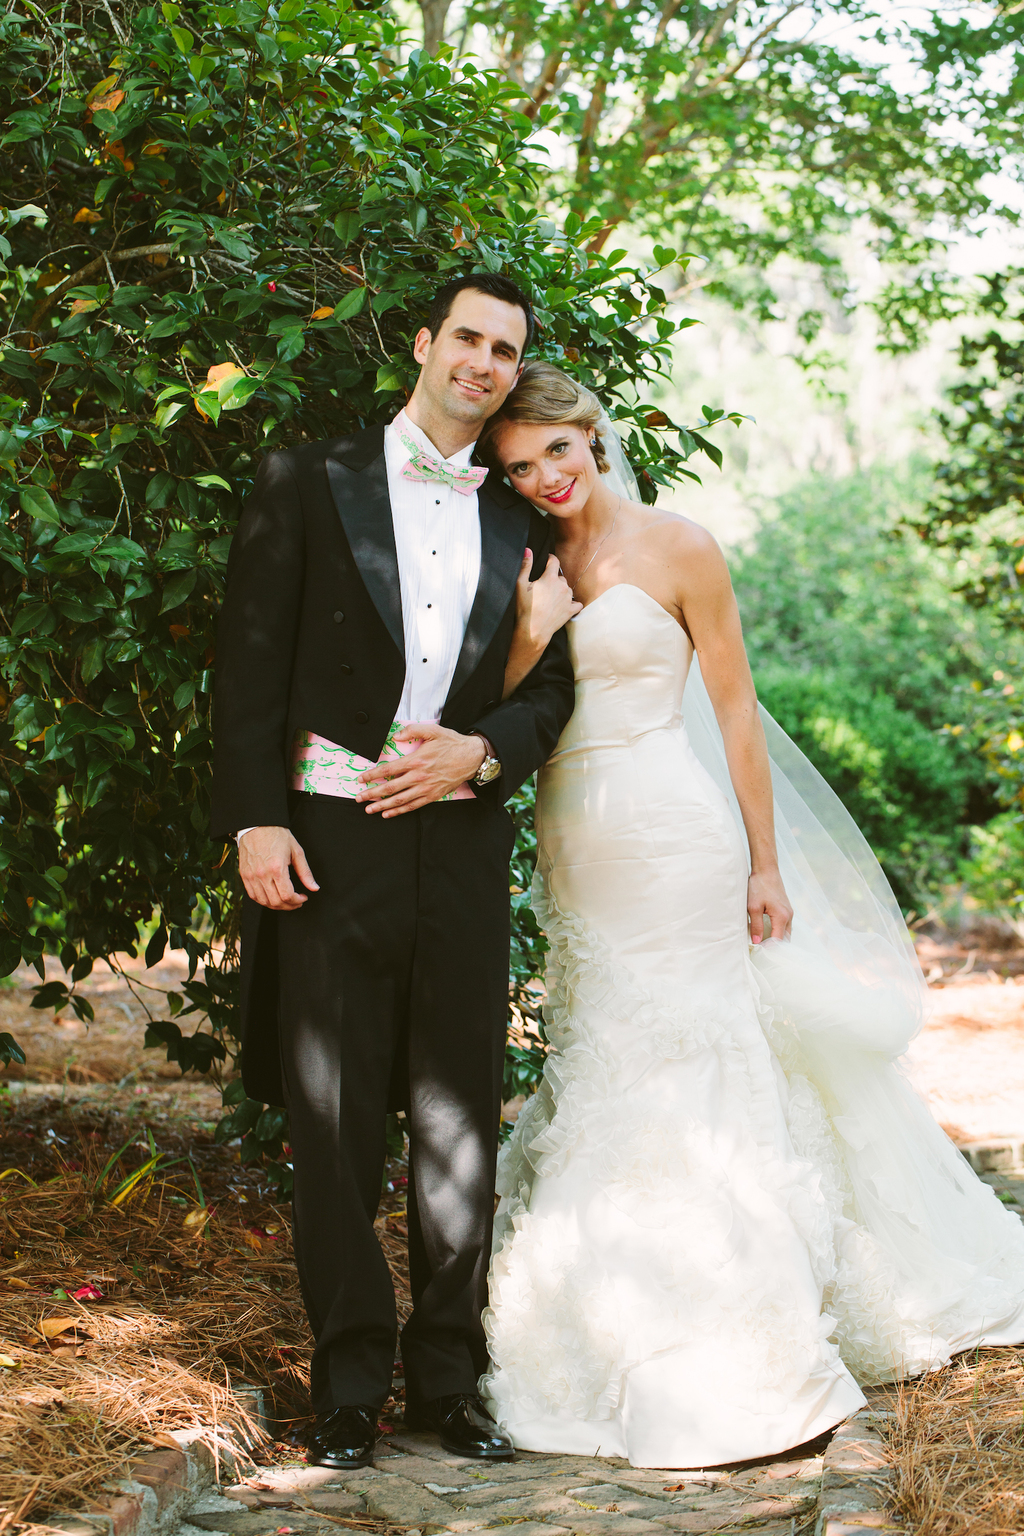 Classic wedding perfection from the elegant bride and groom